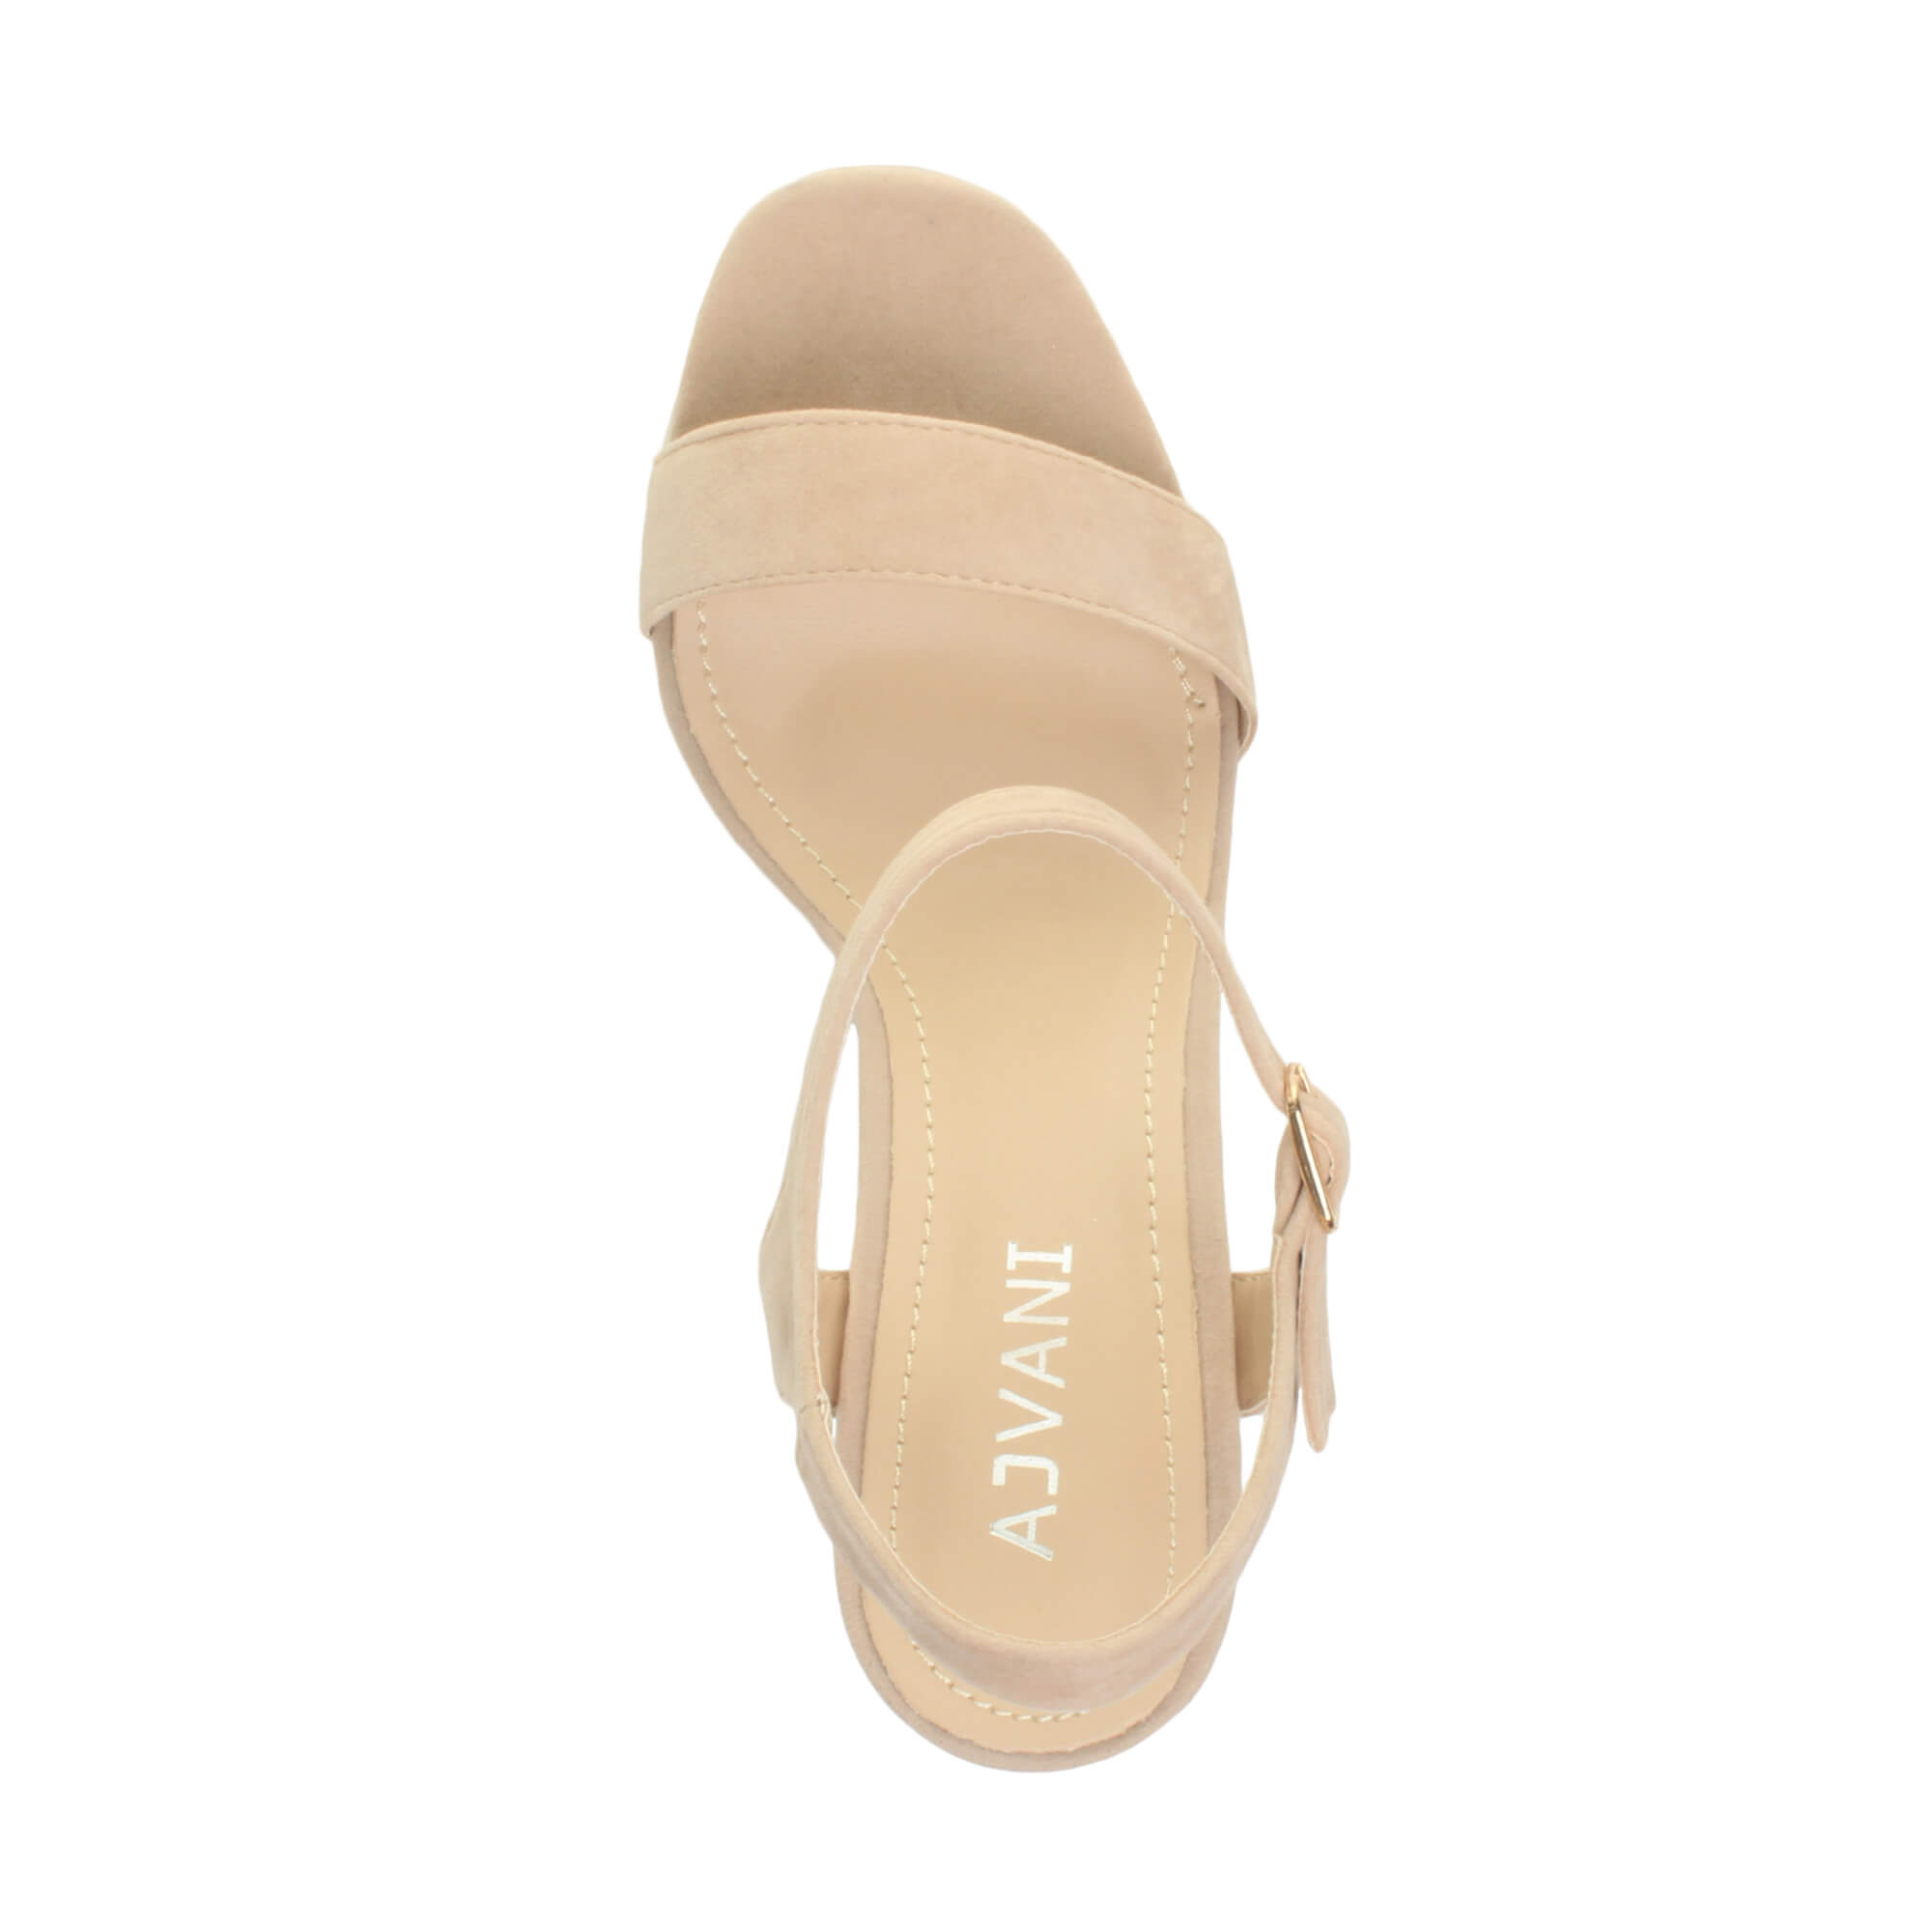 WOMENS-LADIES-HIGH-HEEL-BUCKLE-STRAPPY-BASIC-BARELY-THERE-SANDALS-SHOES-SIZE thumbnail 105